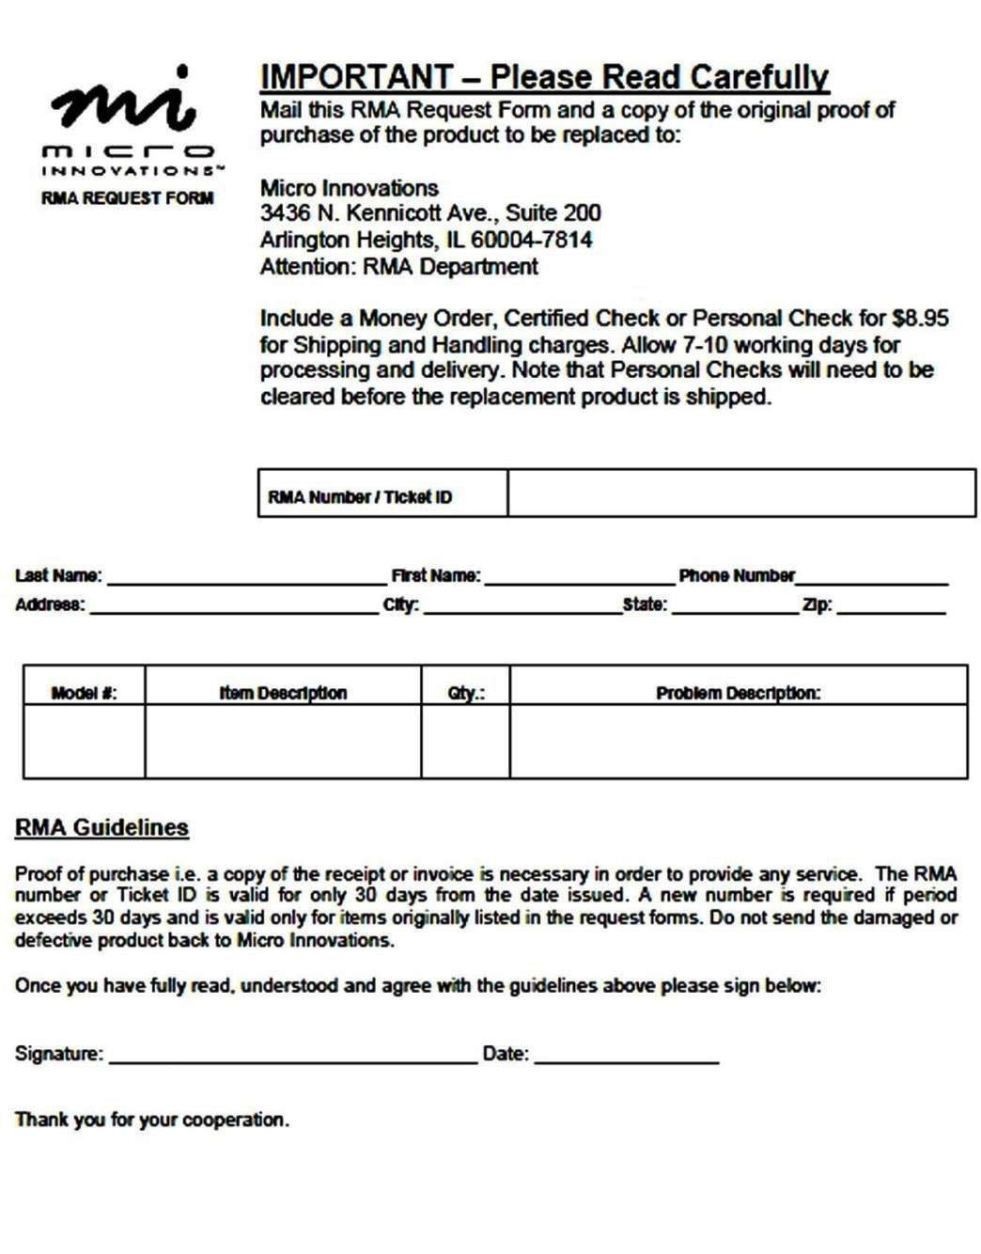 rma request form template - return material authorization form template